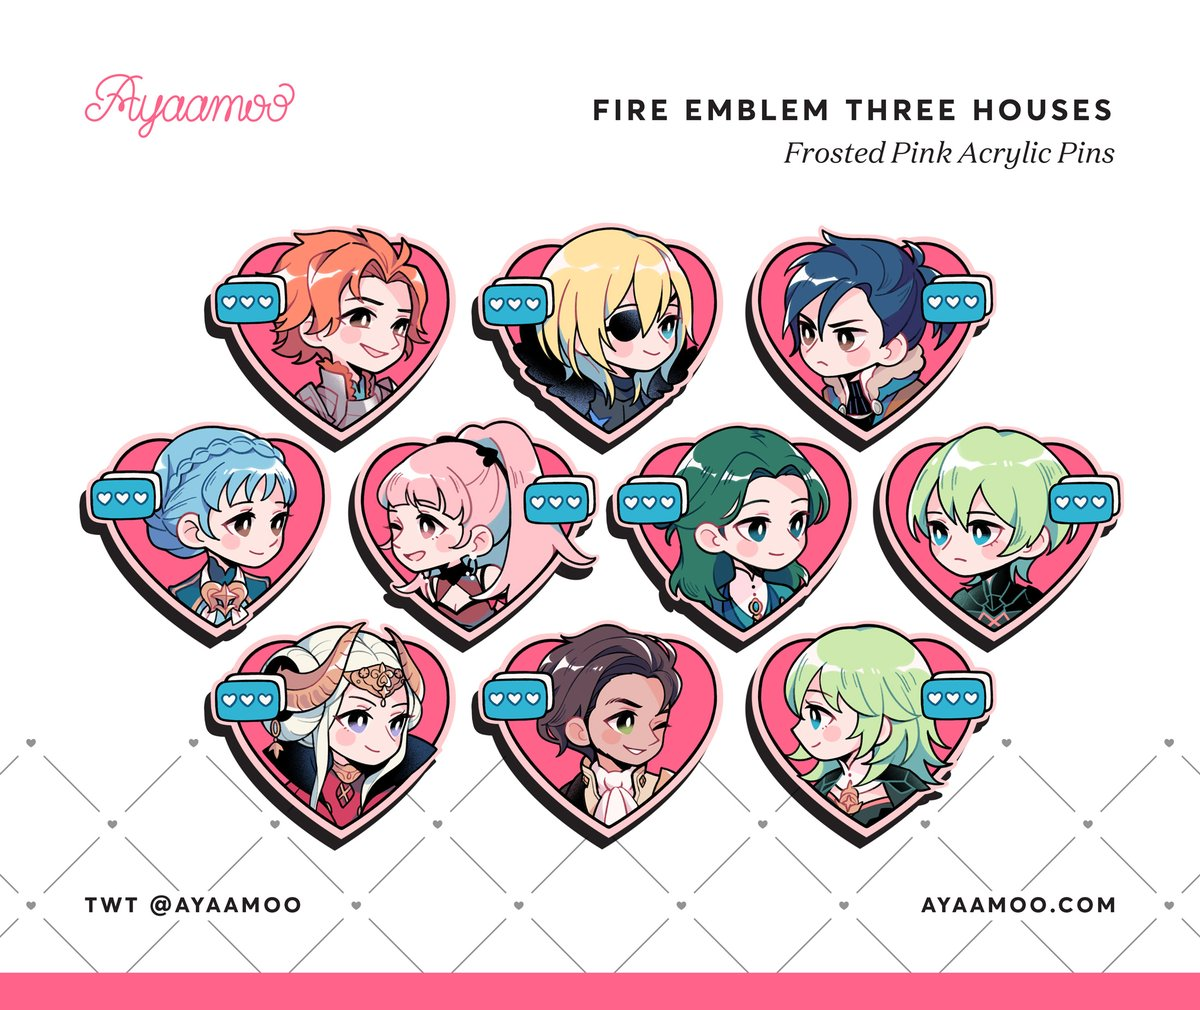 [RTs] Happy belated Valentines! These fe3h heart pins are now up for preorder on my store    http:// ayaamoo.com        Ending Mar 7th  Thank you for your time, any RTs are greatly appreciated!  #fe3h #FireEmblemThreeHouses<br>http://pic.twitter.com/lSnIykZTeW